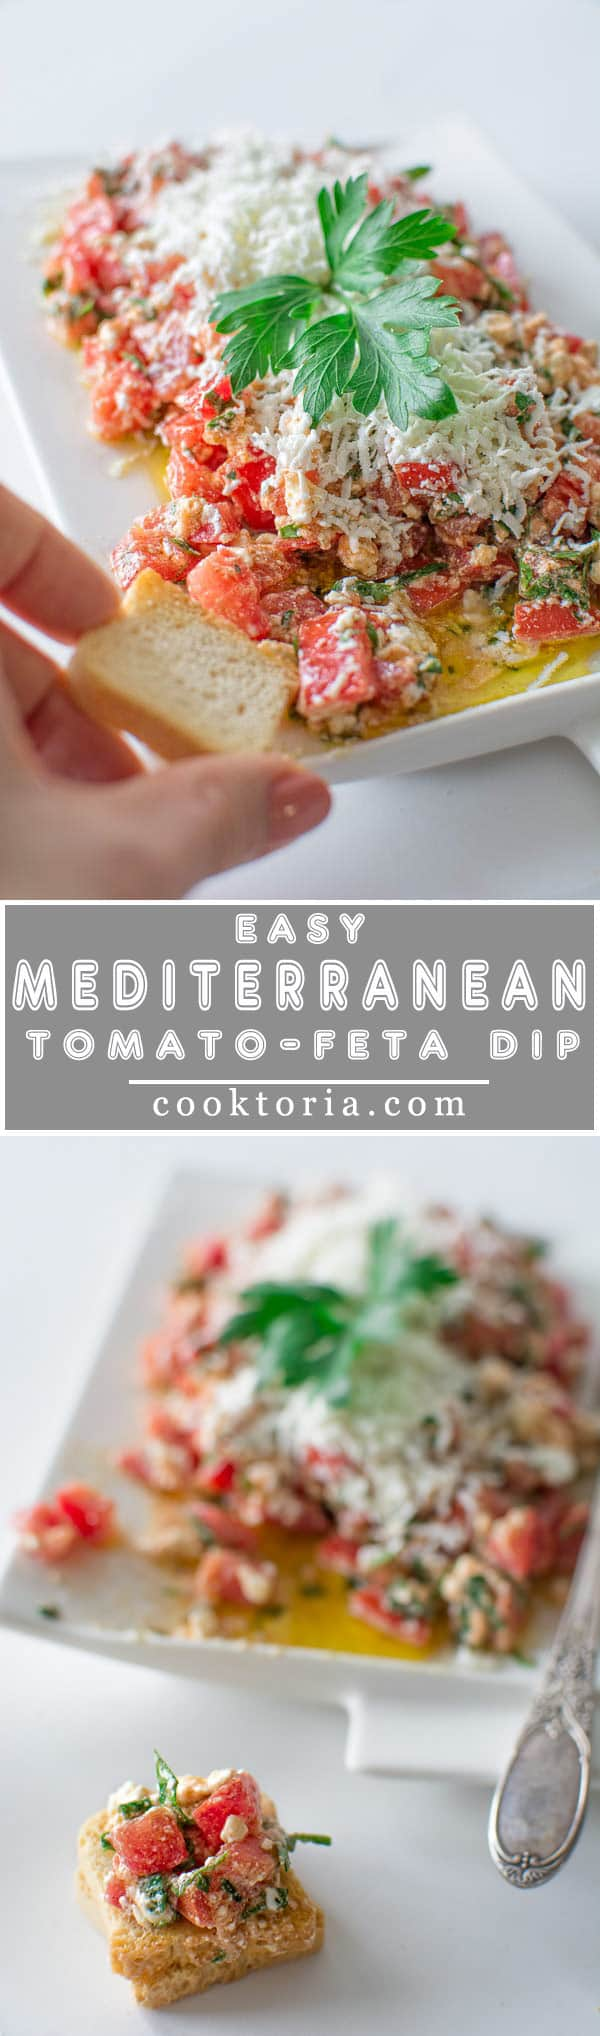 Easy Tomato Feta Dip - a crowd pleasing appetizer that will make your guests ask for more!!! ❤ COOKTORIA.COM